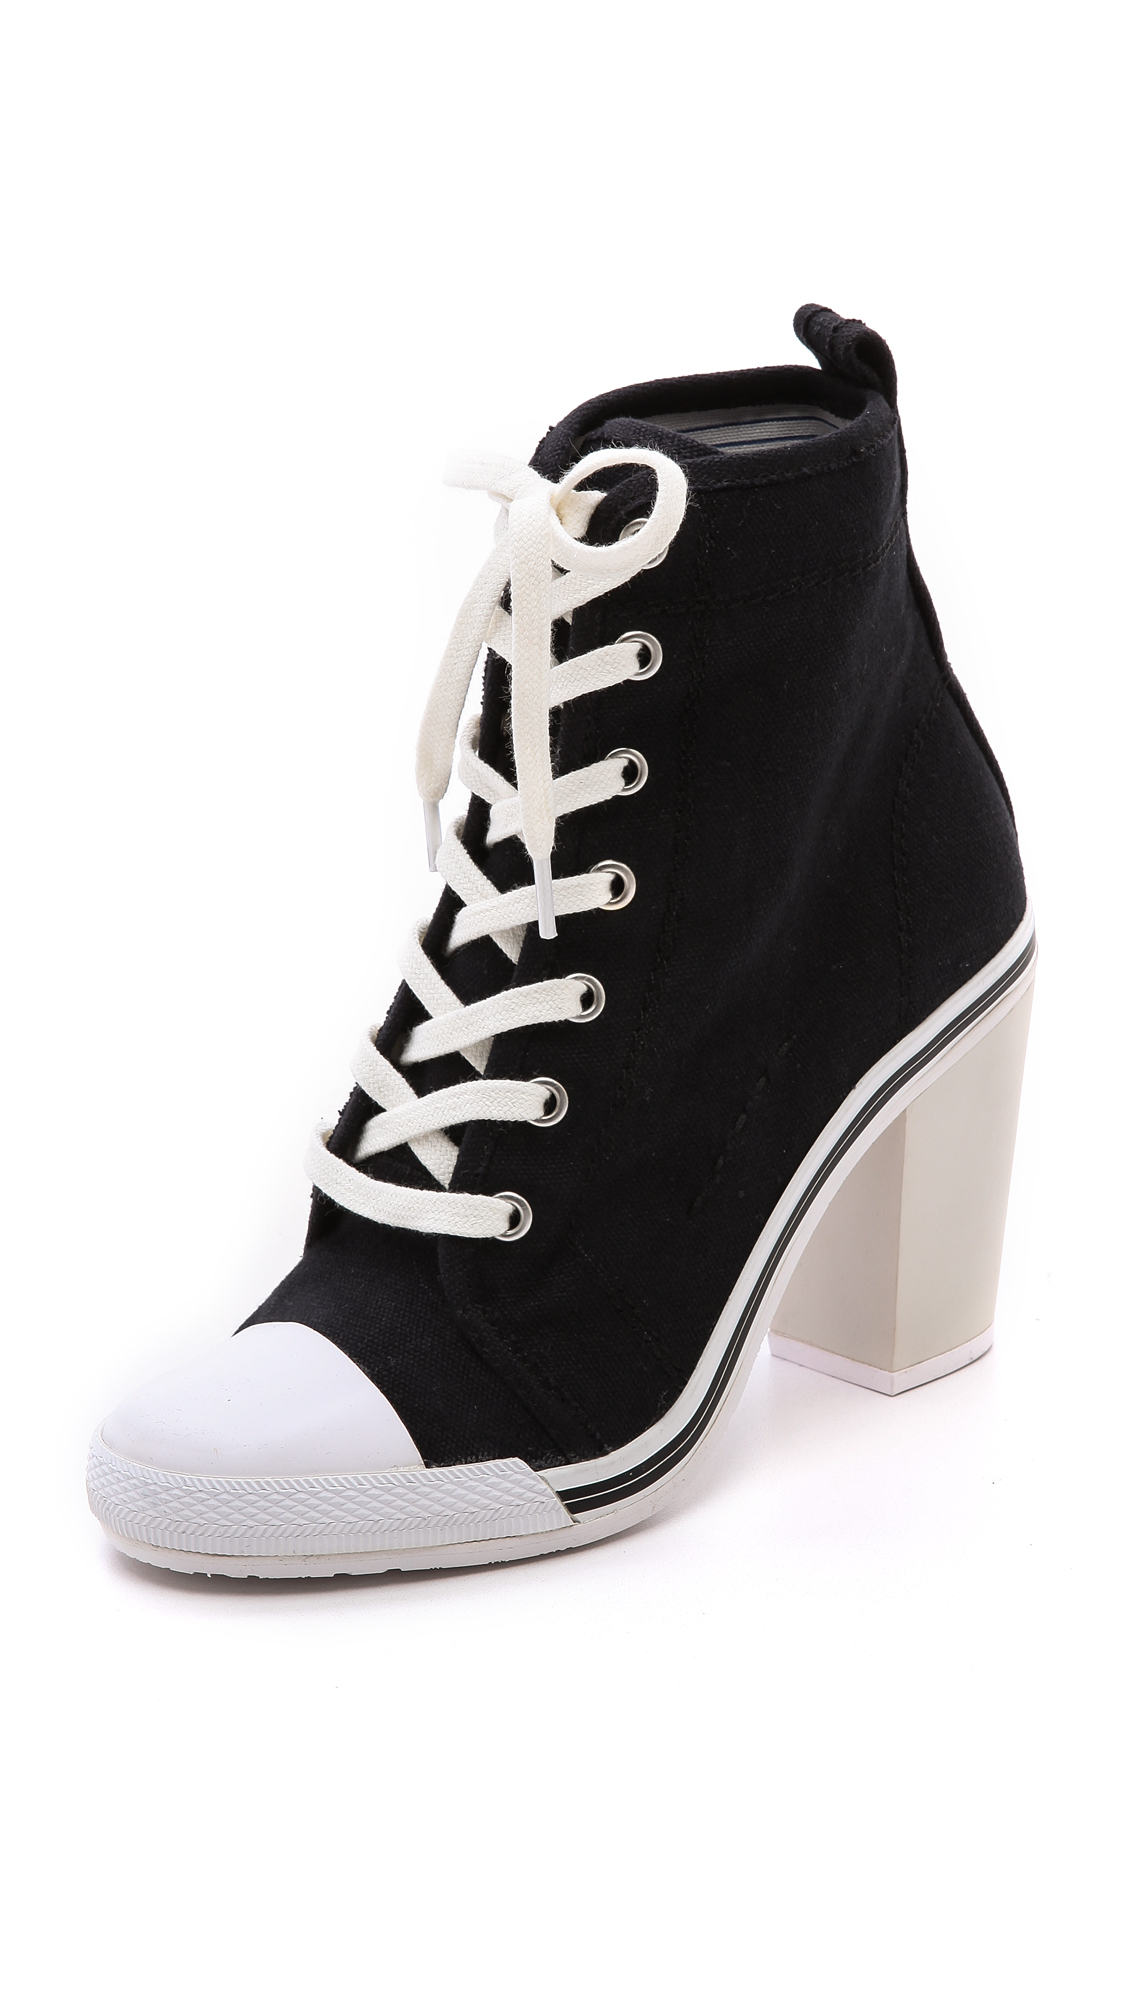 490a3460203 DKNY x Opening Ceremony High Heel Sneakers   SHOPBOP